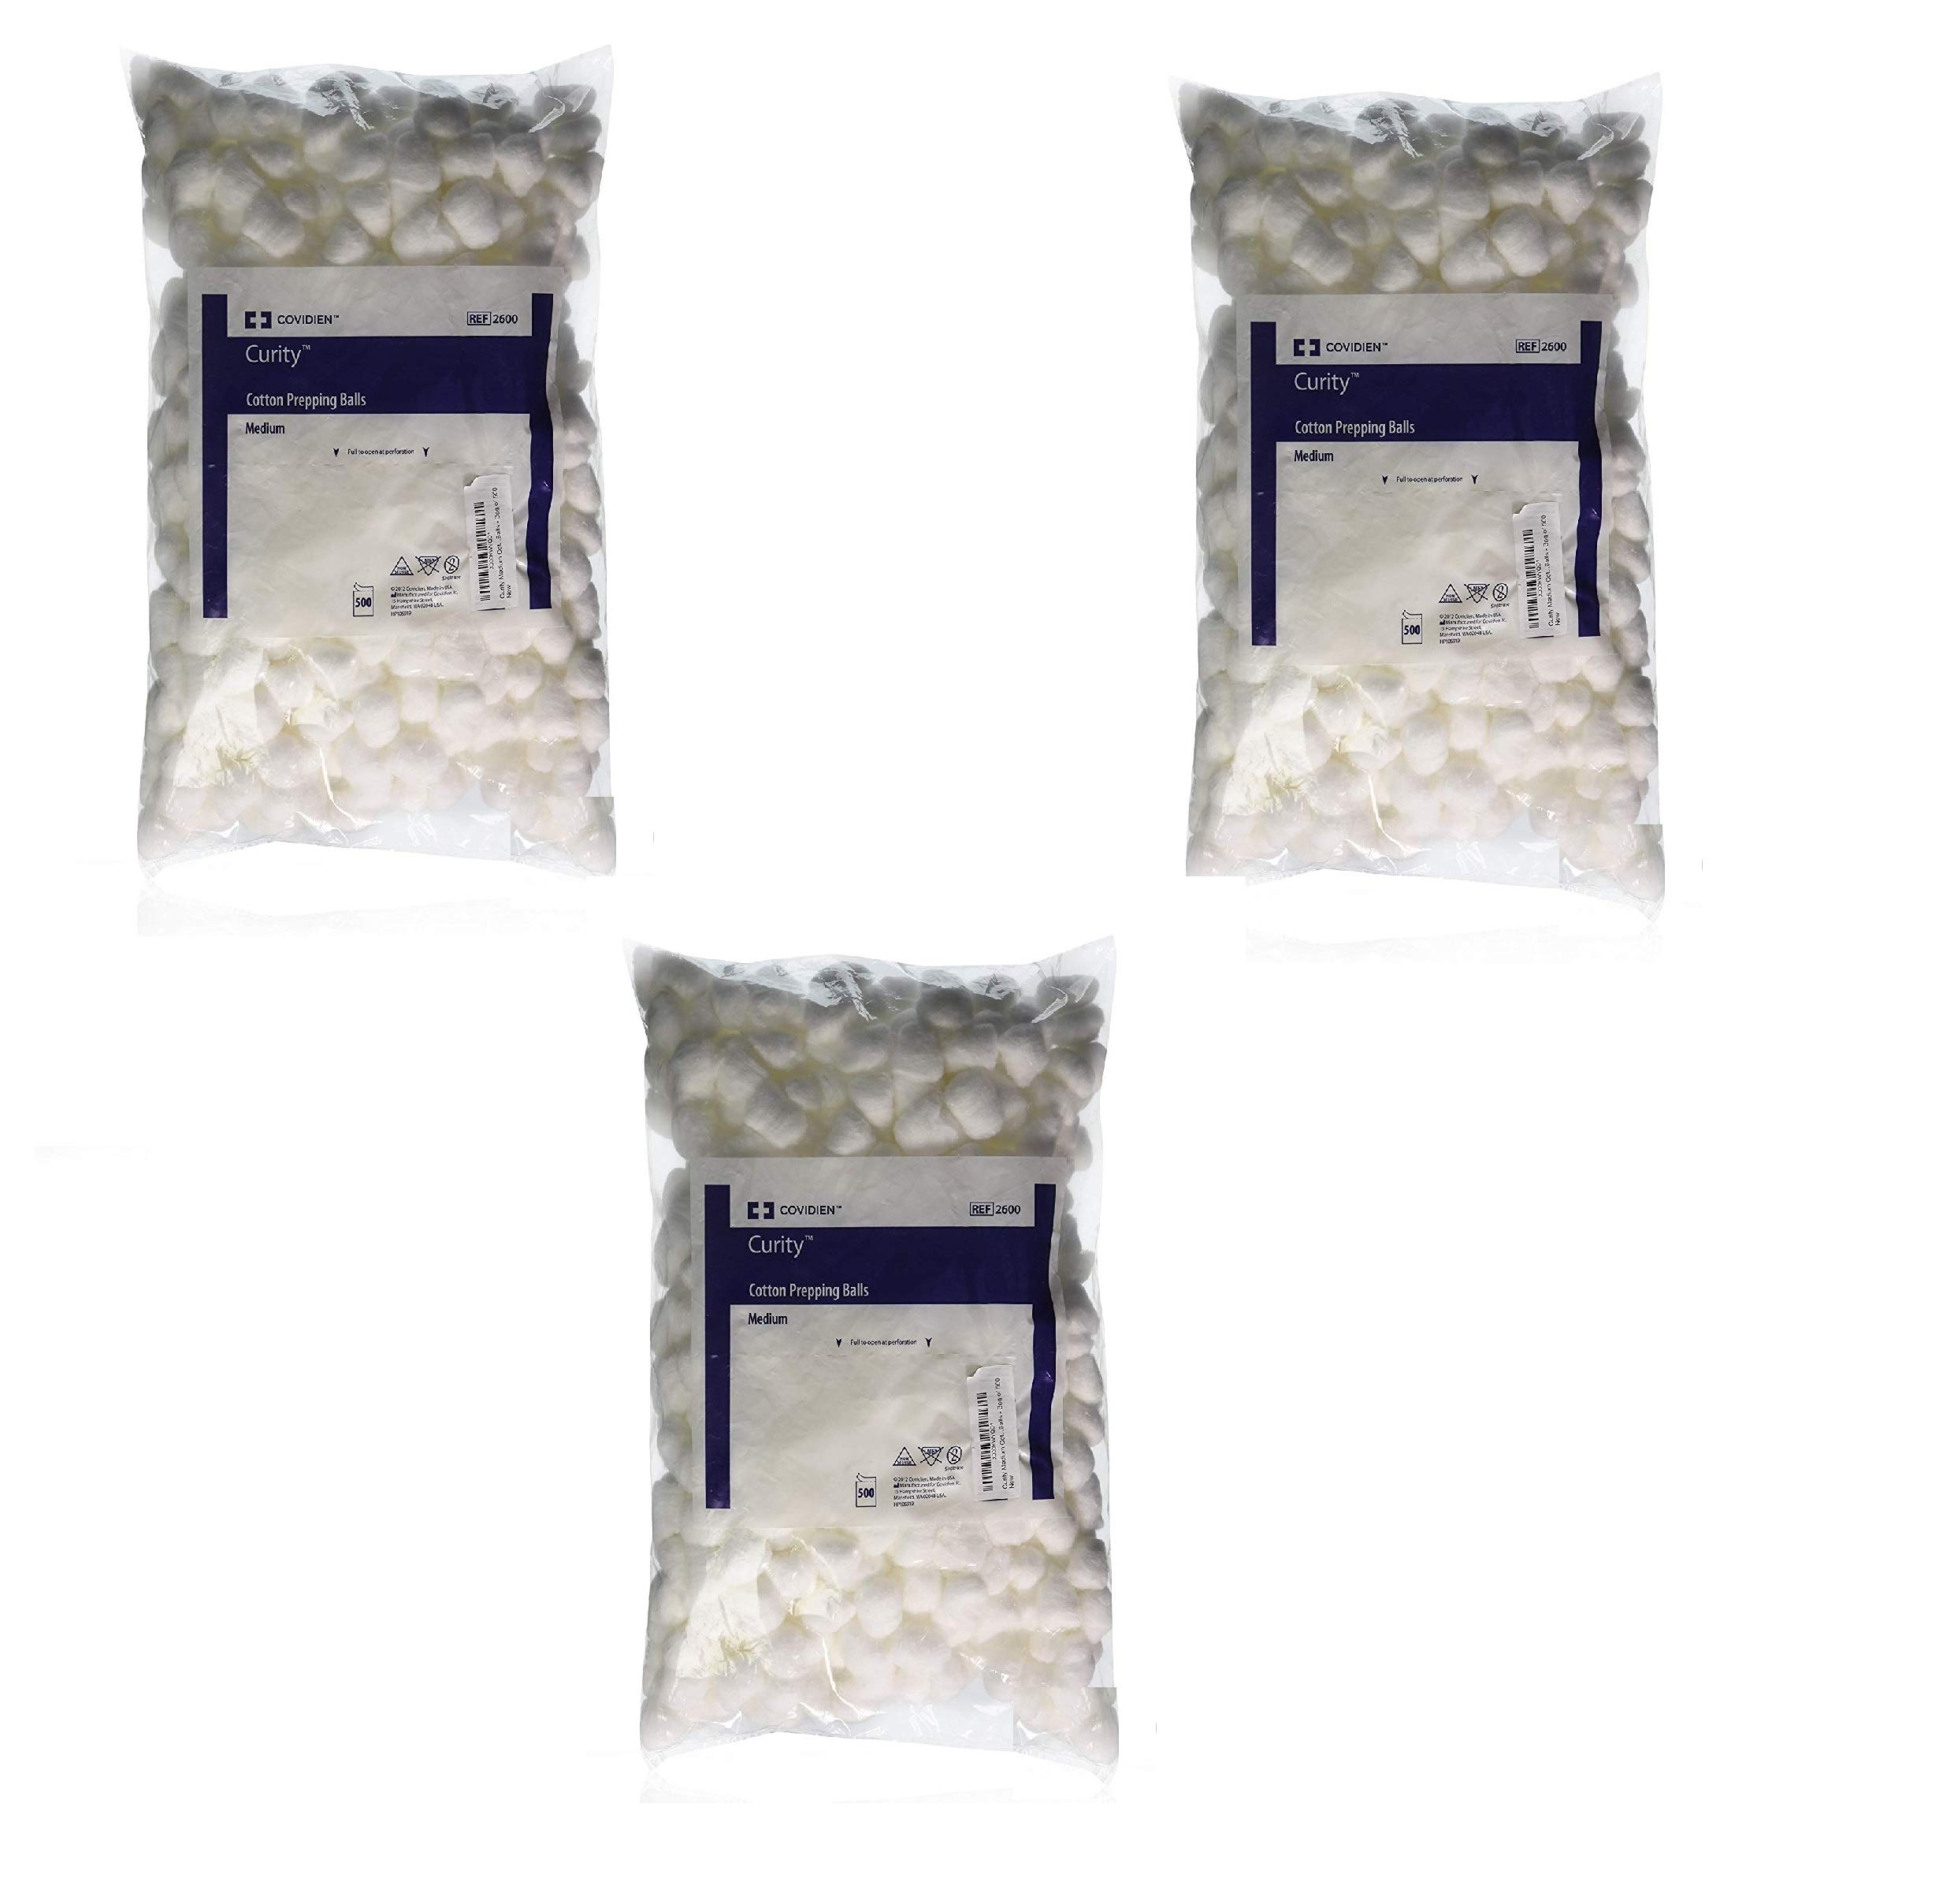 Kendall COTTON500DS Curity Medium Cotton Balls - Bag of 500 (3 Pack)